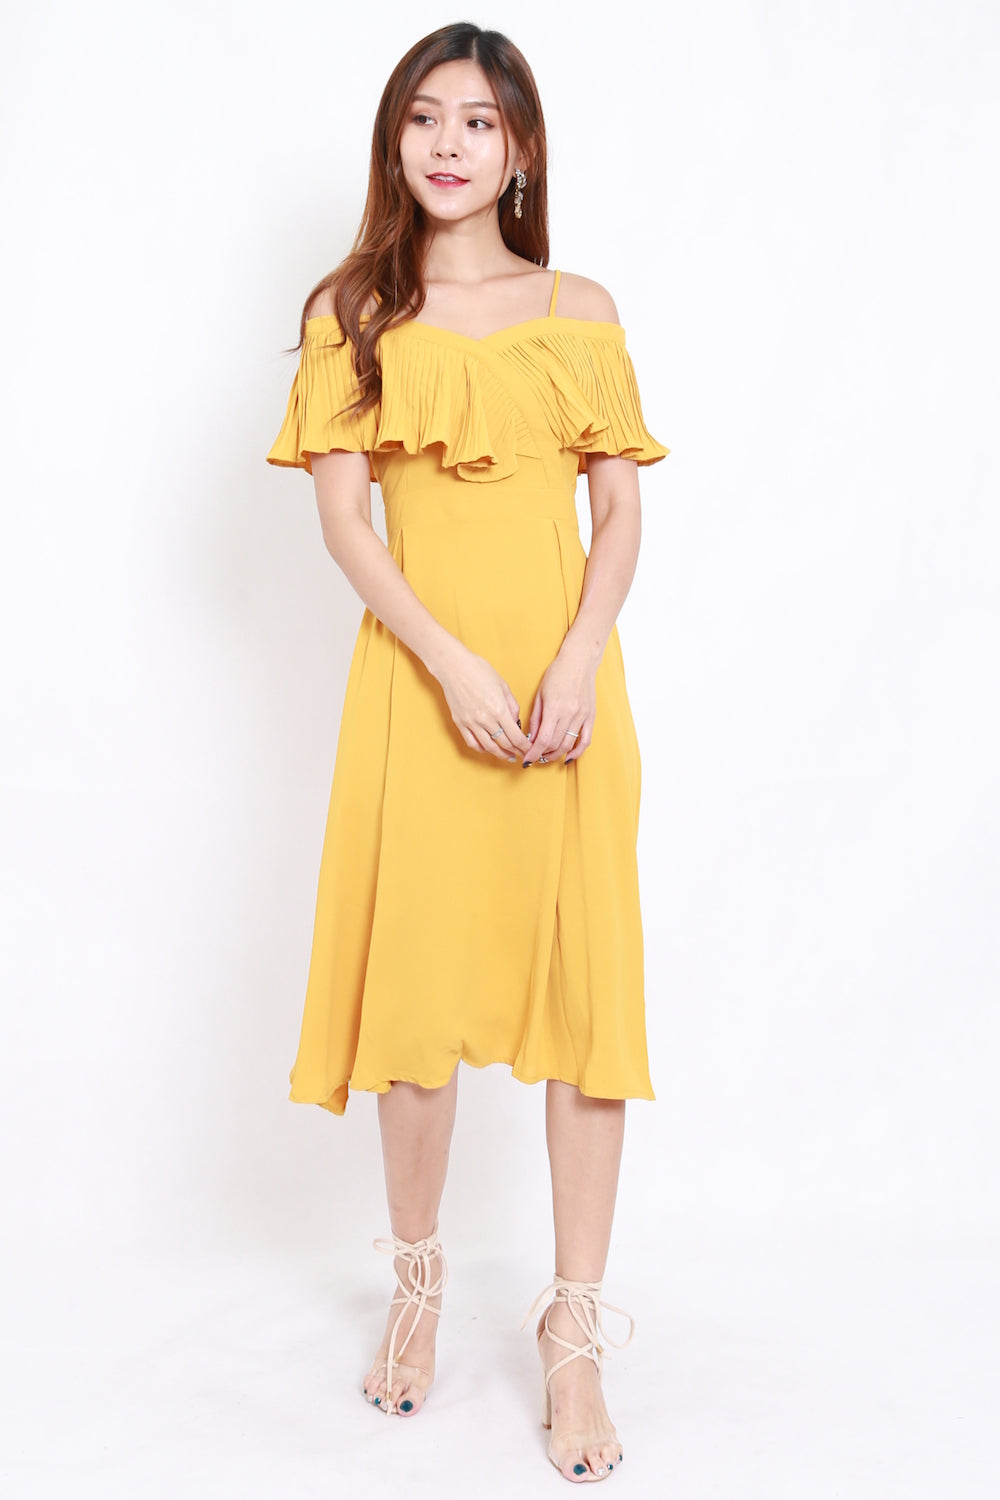 961d65e41349 Pleated Off Shoulder Midi Dress (Yellow) – Carrislabelle